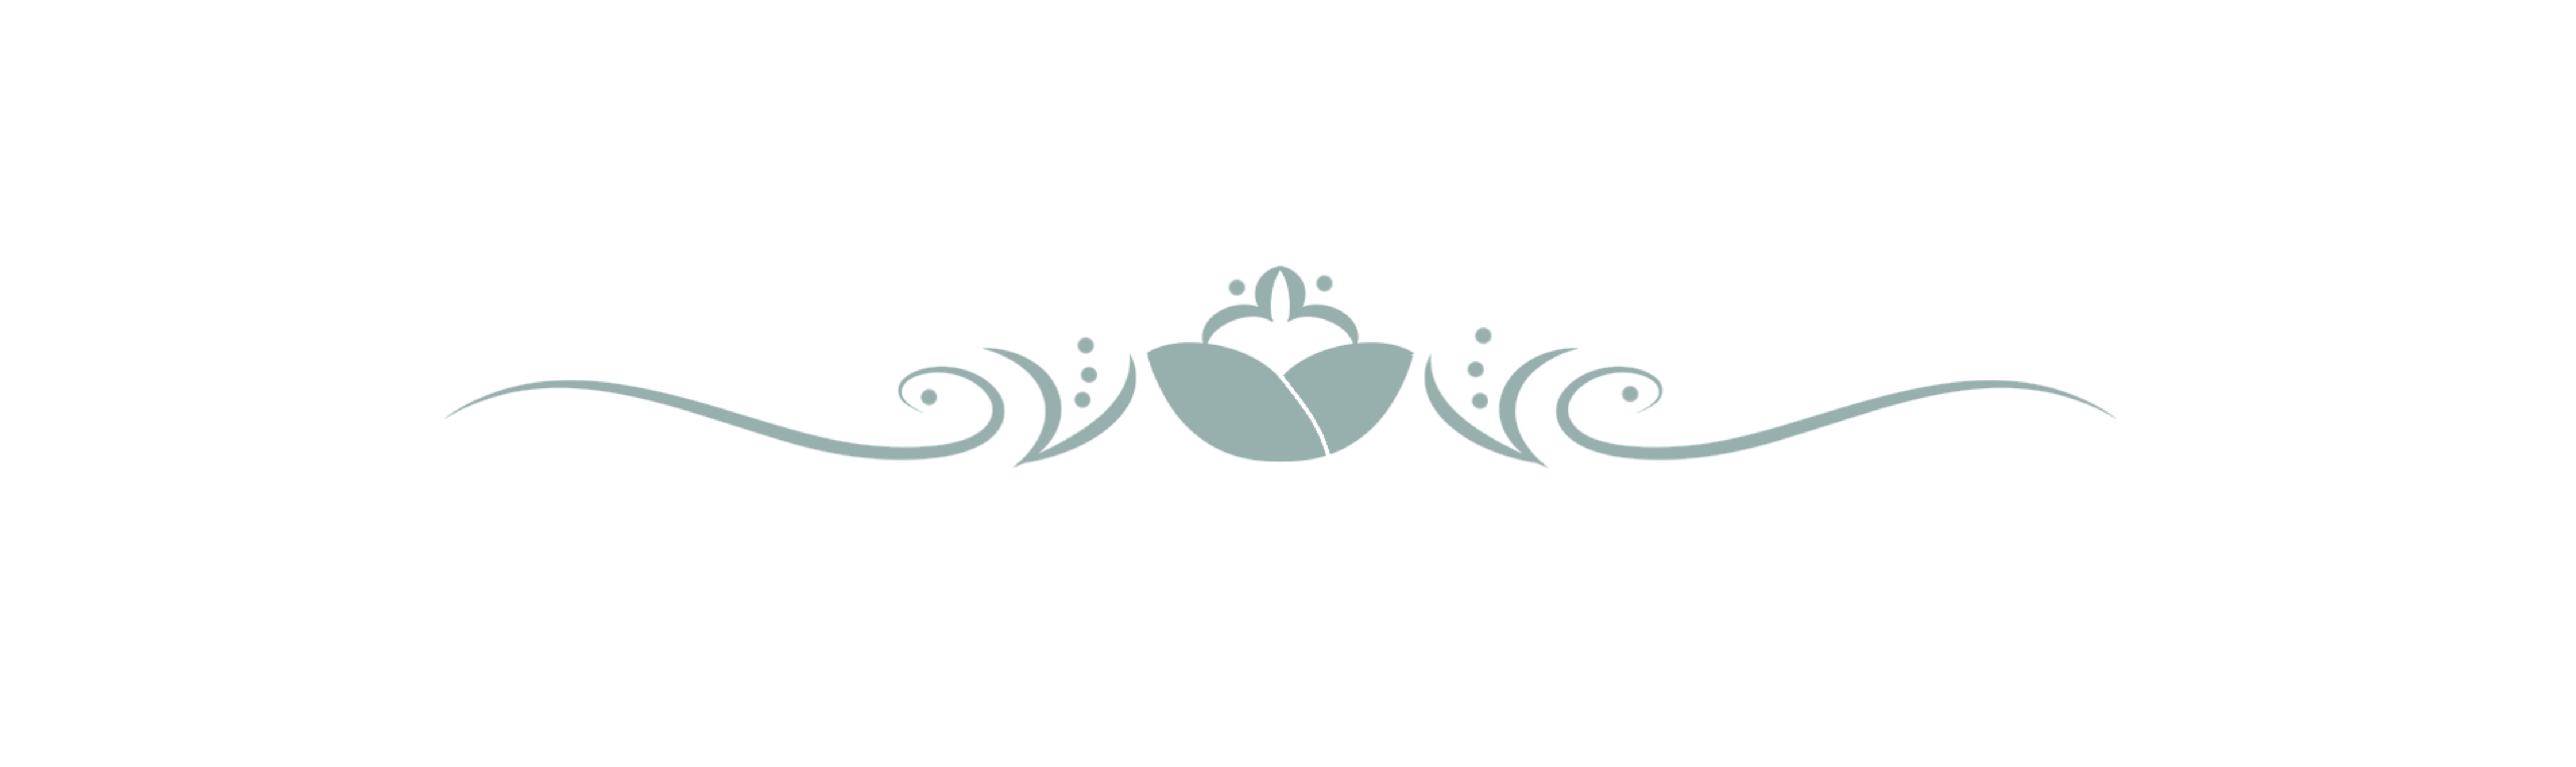 Curl clipart wedding Only wedding month Wedding reflects